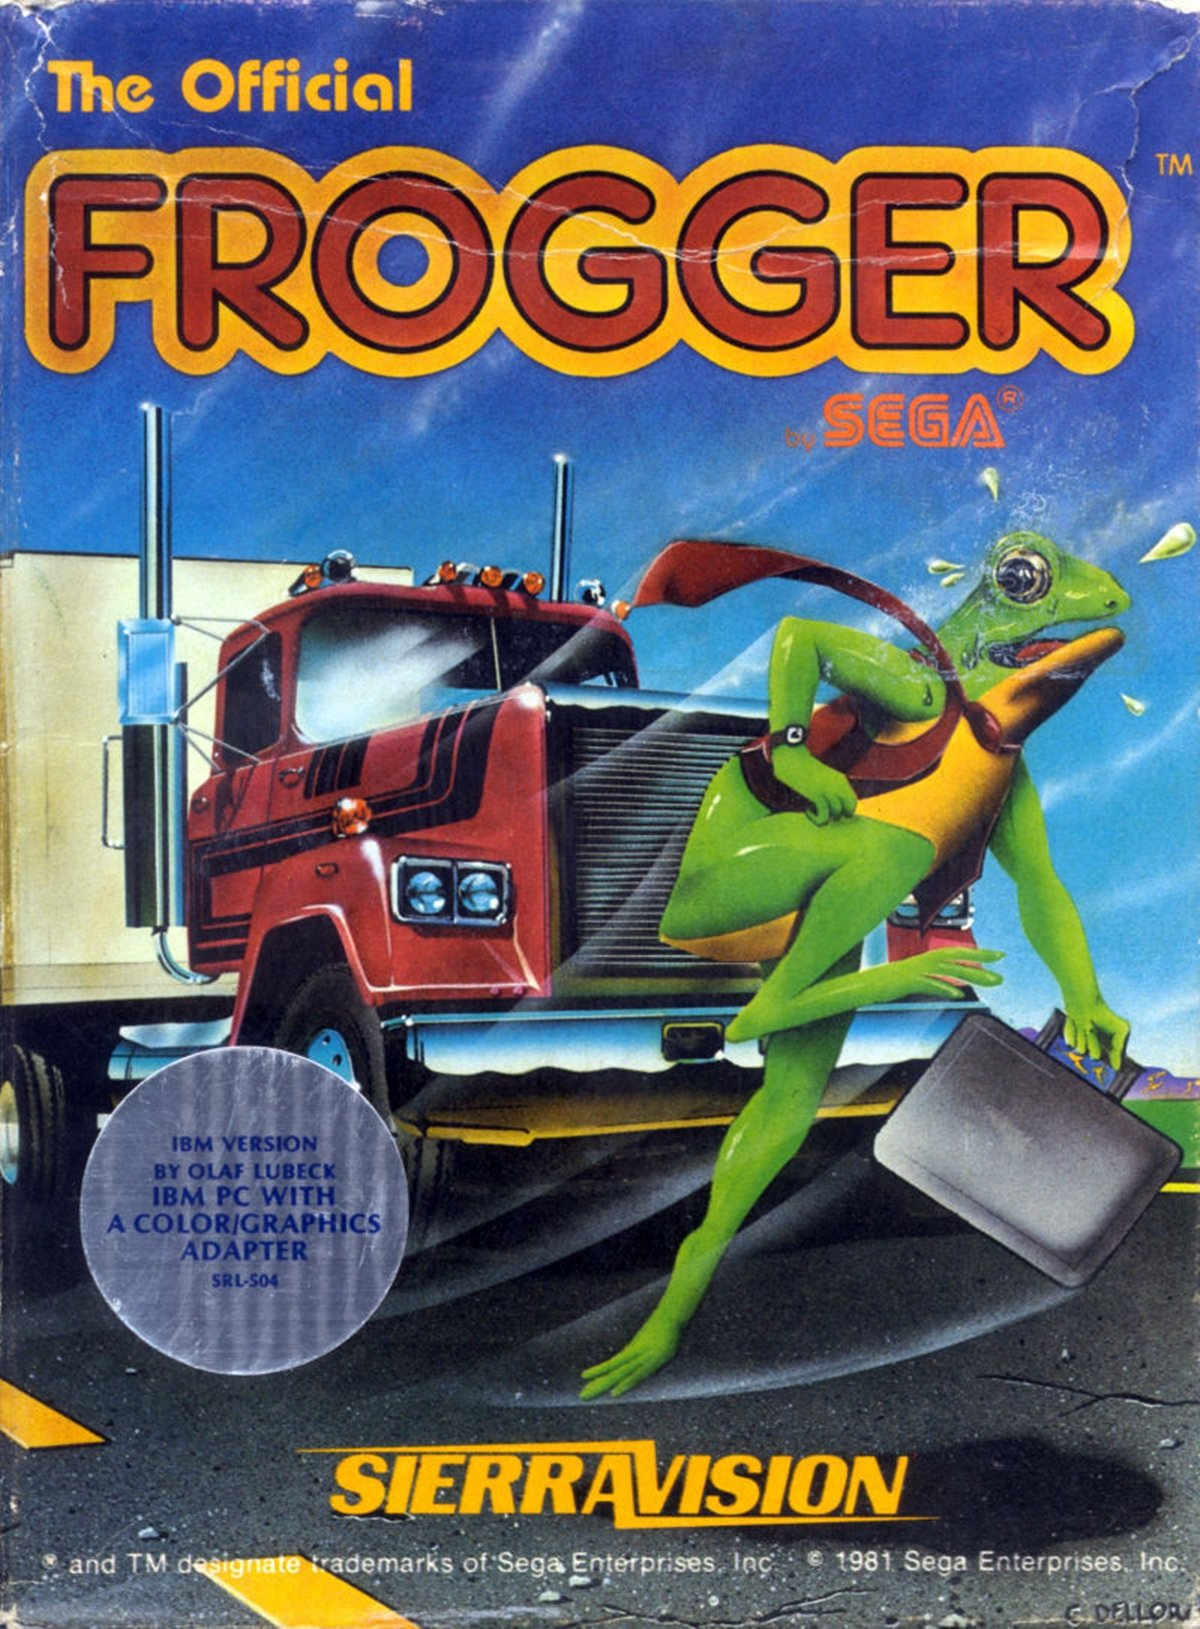 24 25 Retro Computer Games That Will Remind You Of Being A Kid